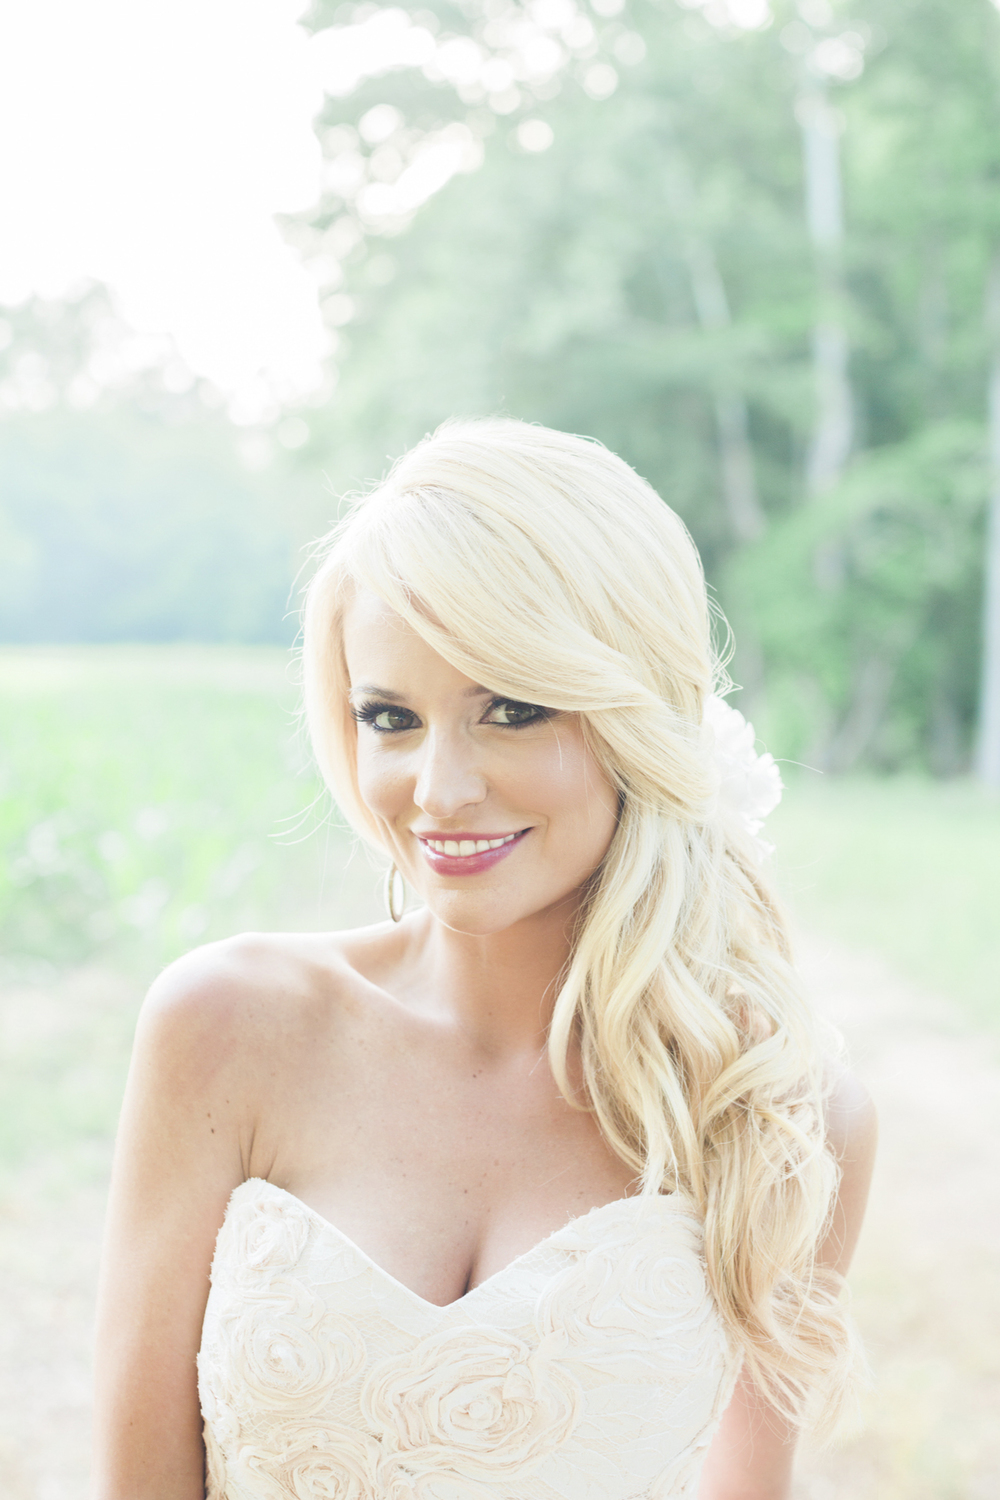 south_carolina_farm_wedding_rustic_chic_surprise_secret_luxe_wedding_bachelorette_emily_maynard_real_weddings-37.jpg